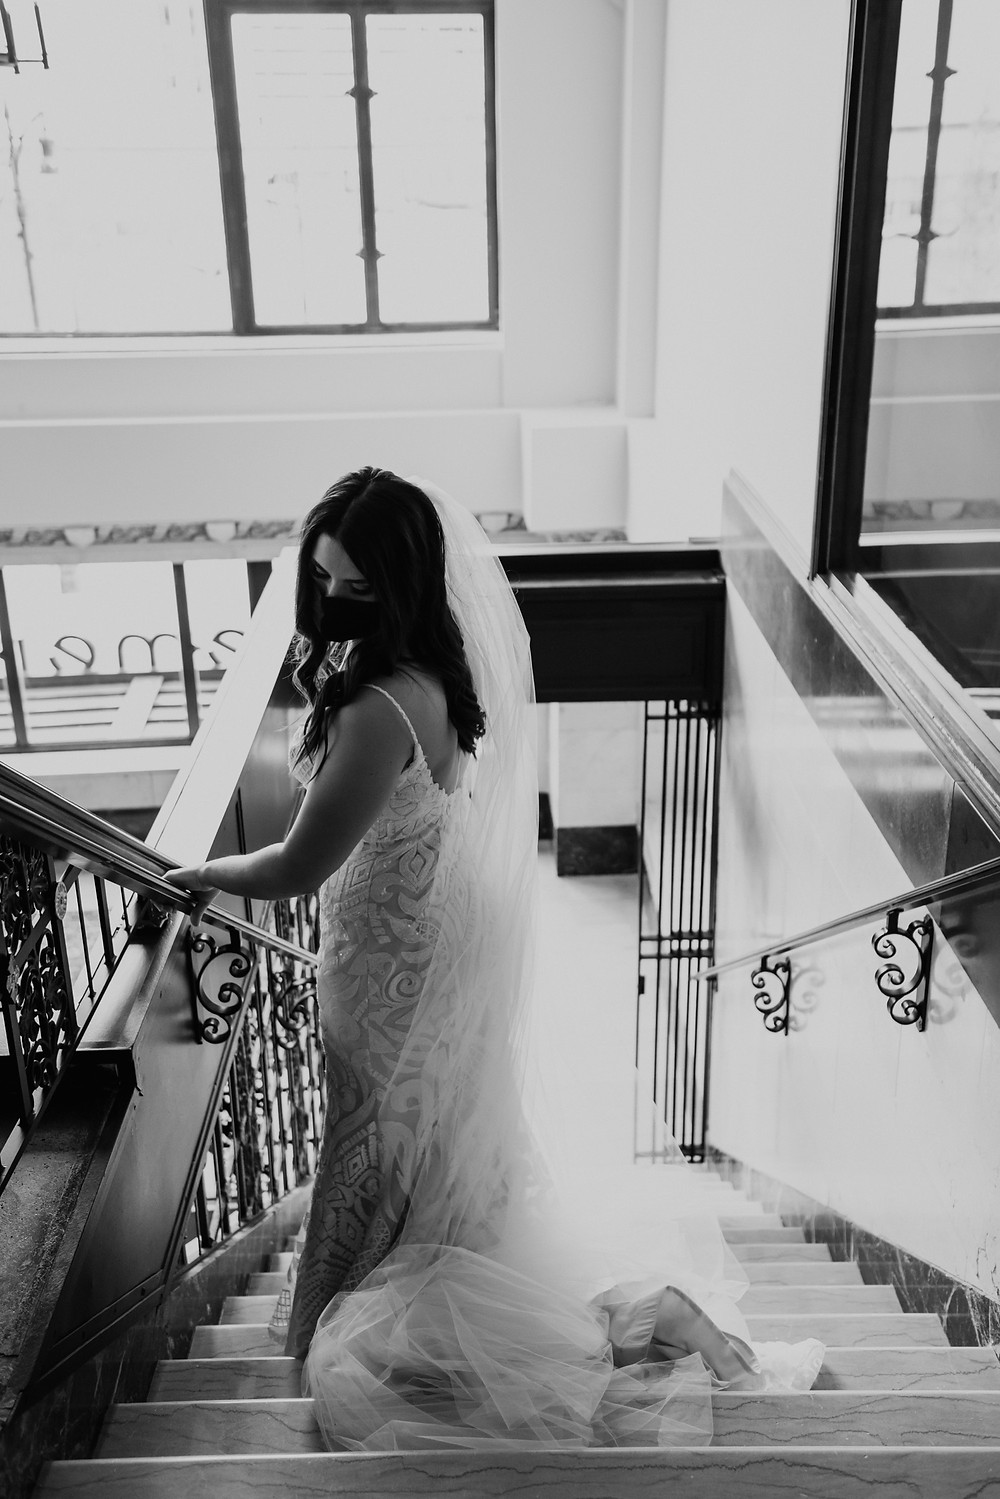 Bride walking down stairs with wedding dress and train. Photographed by Nicole Leanne Photography.